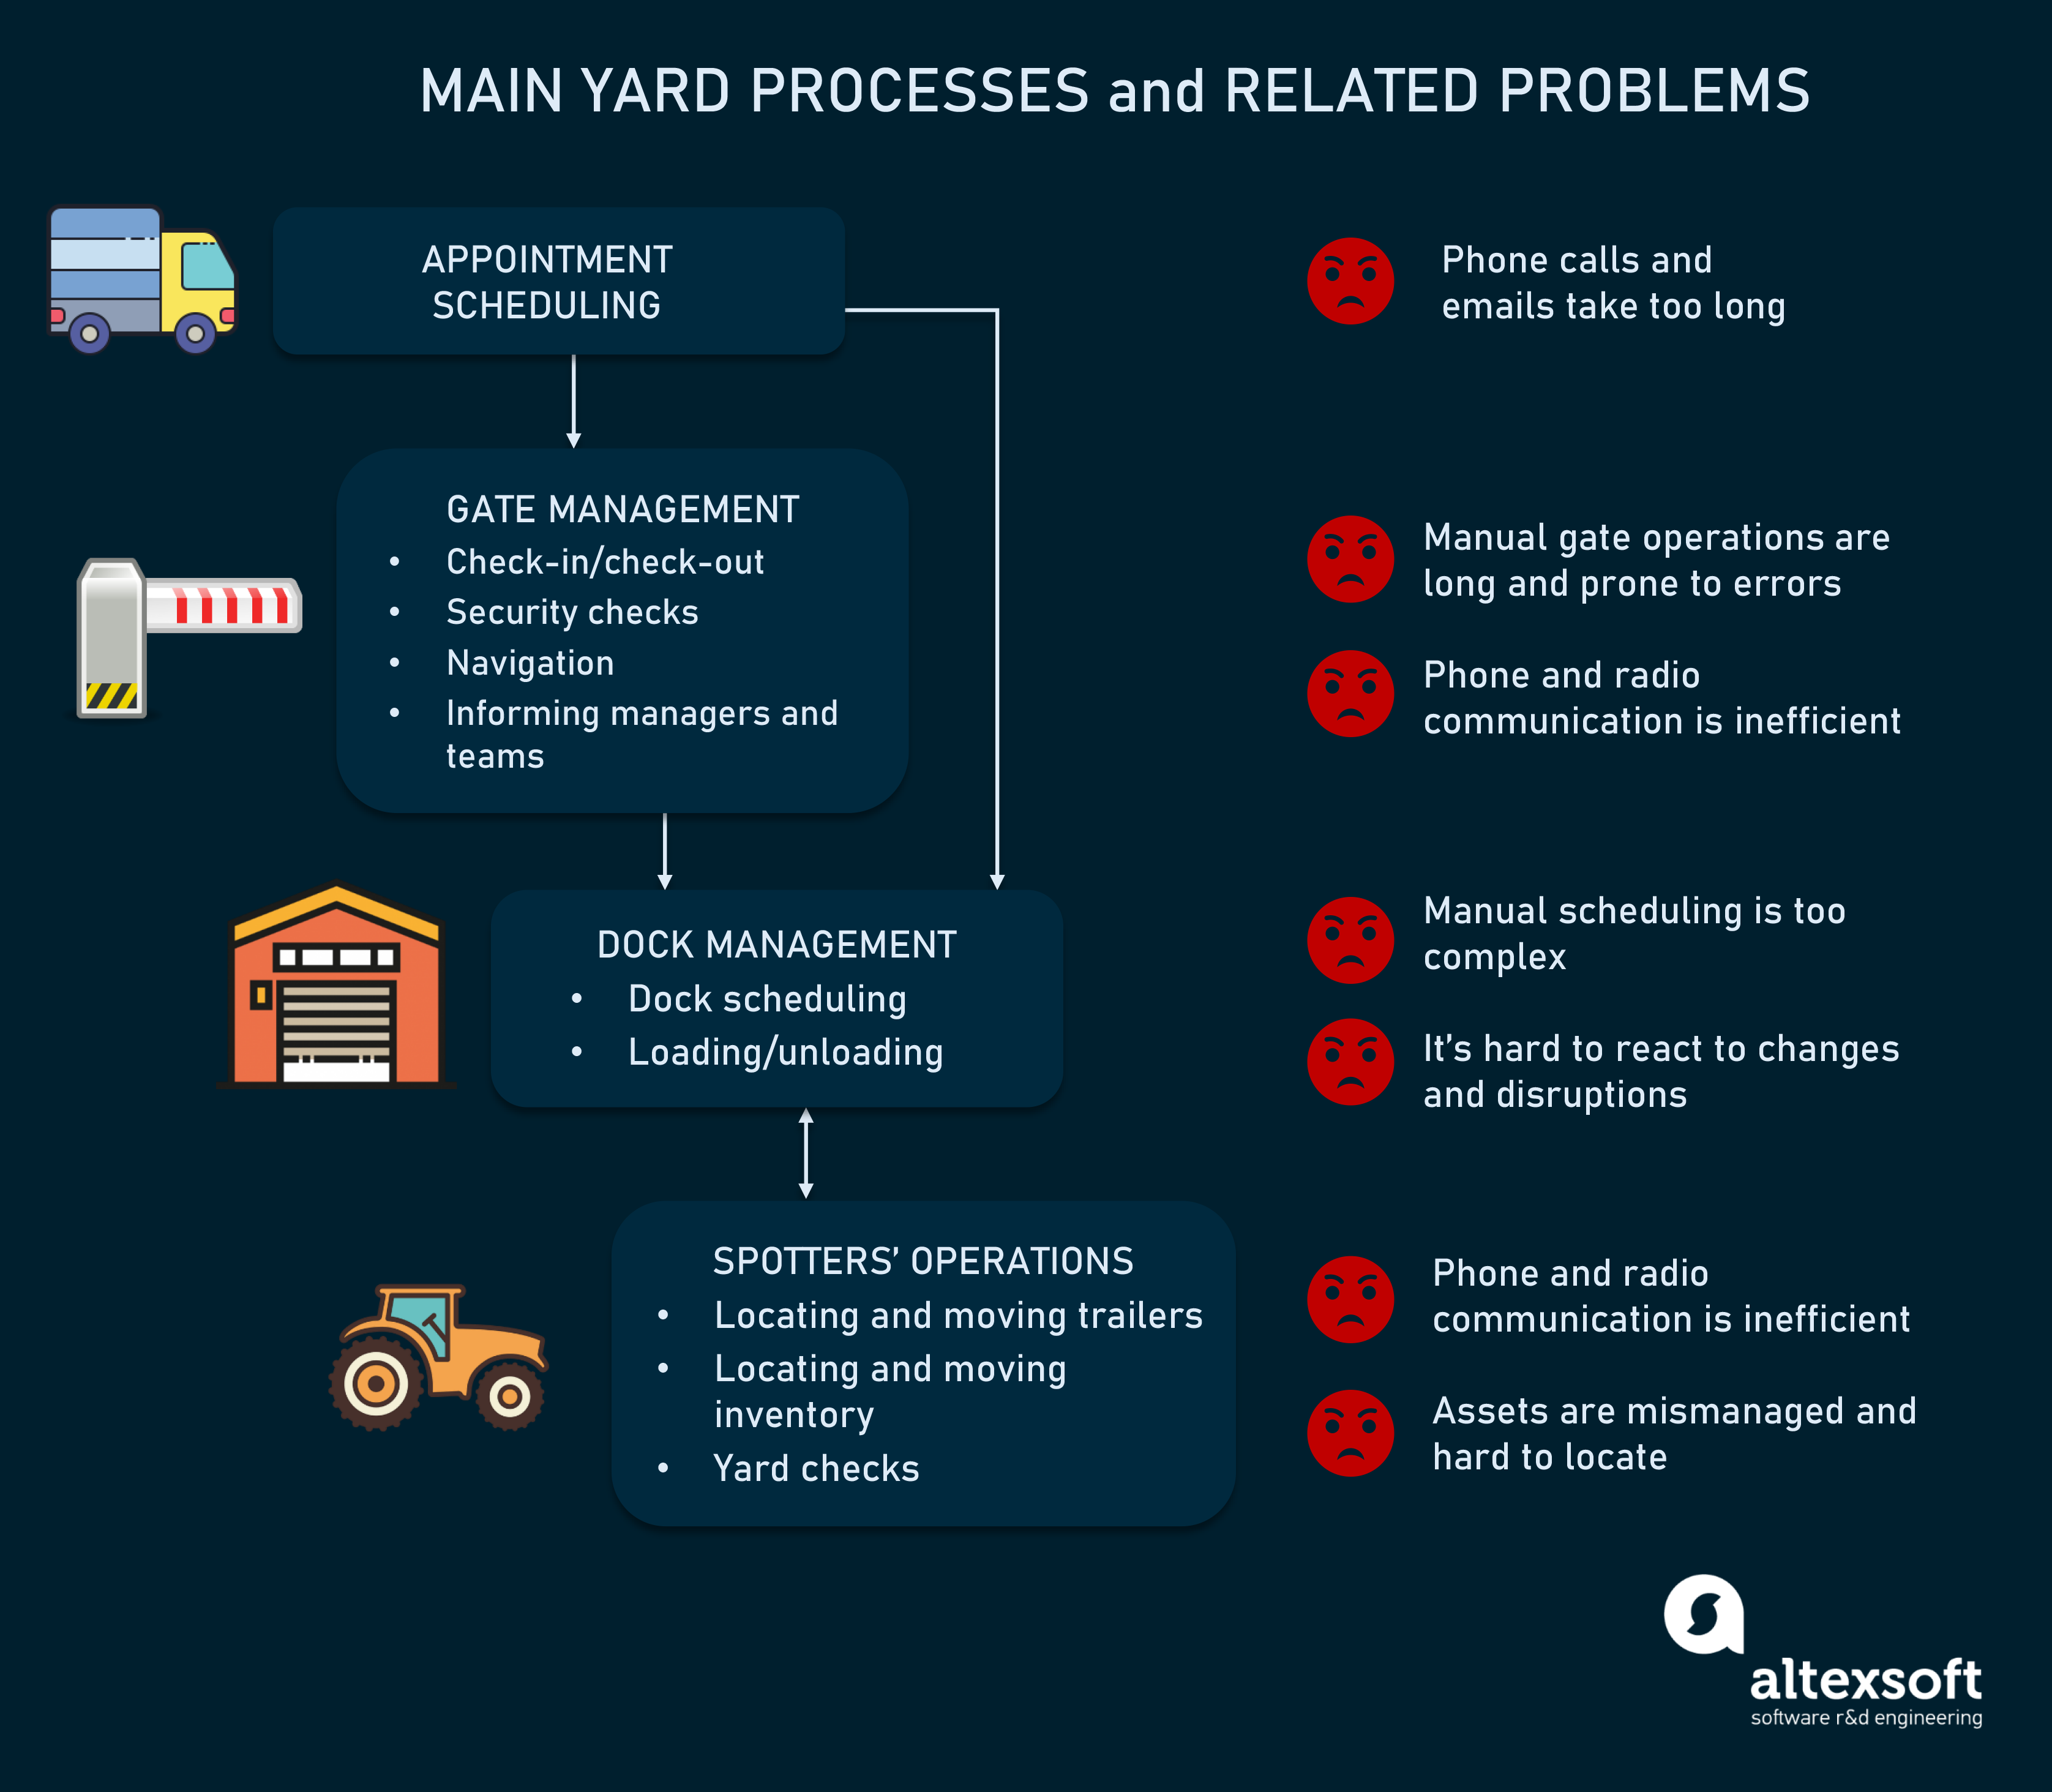 Main yard processes and challenges